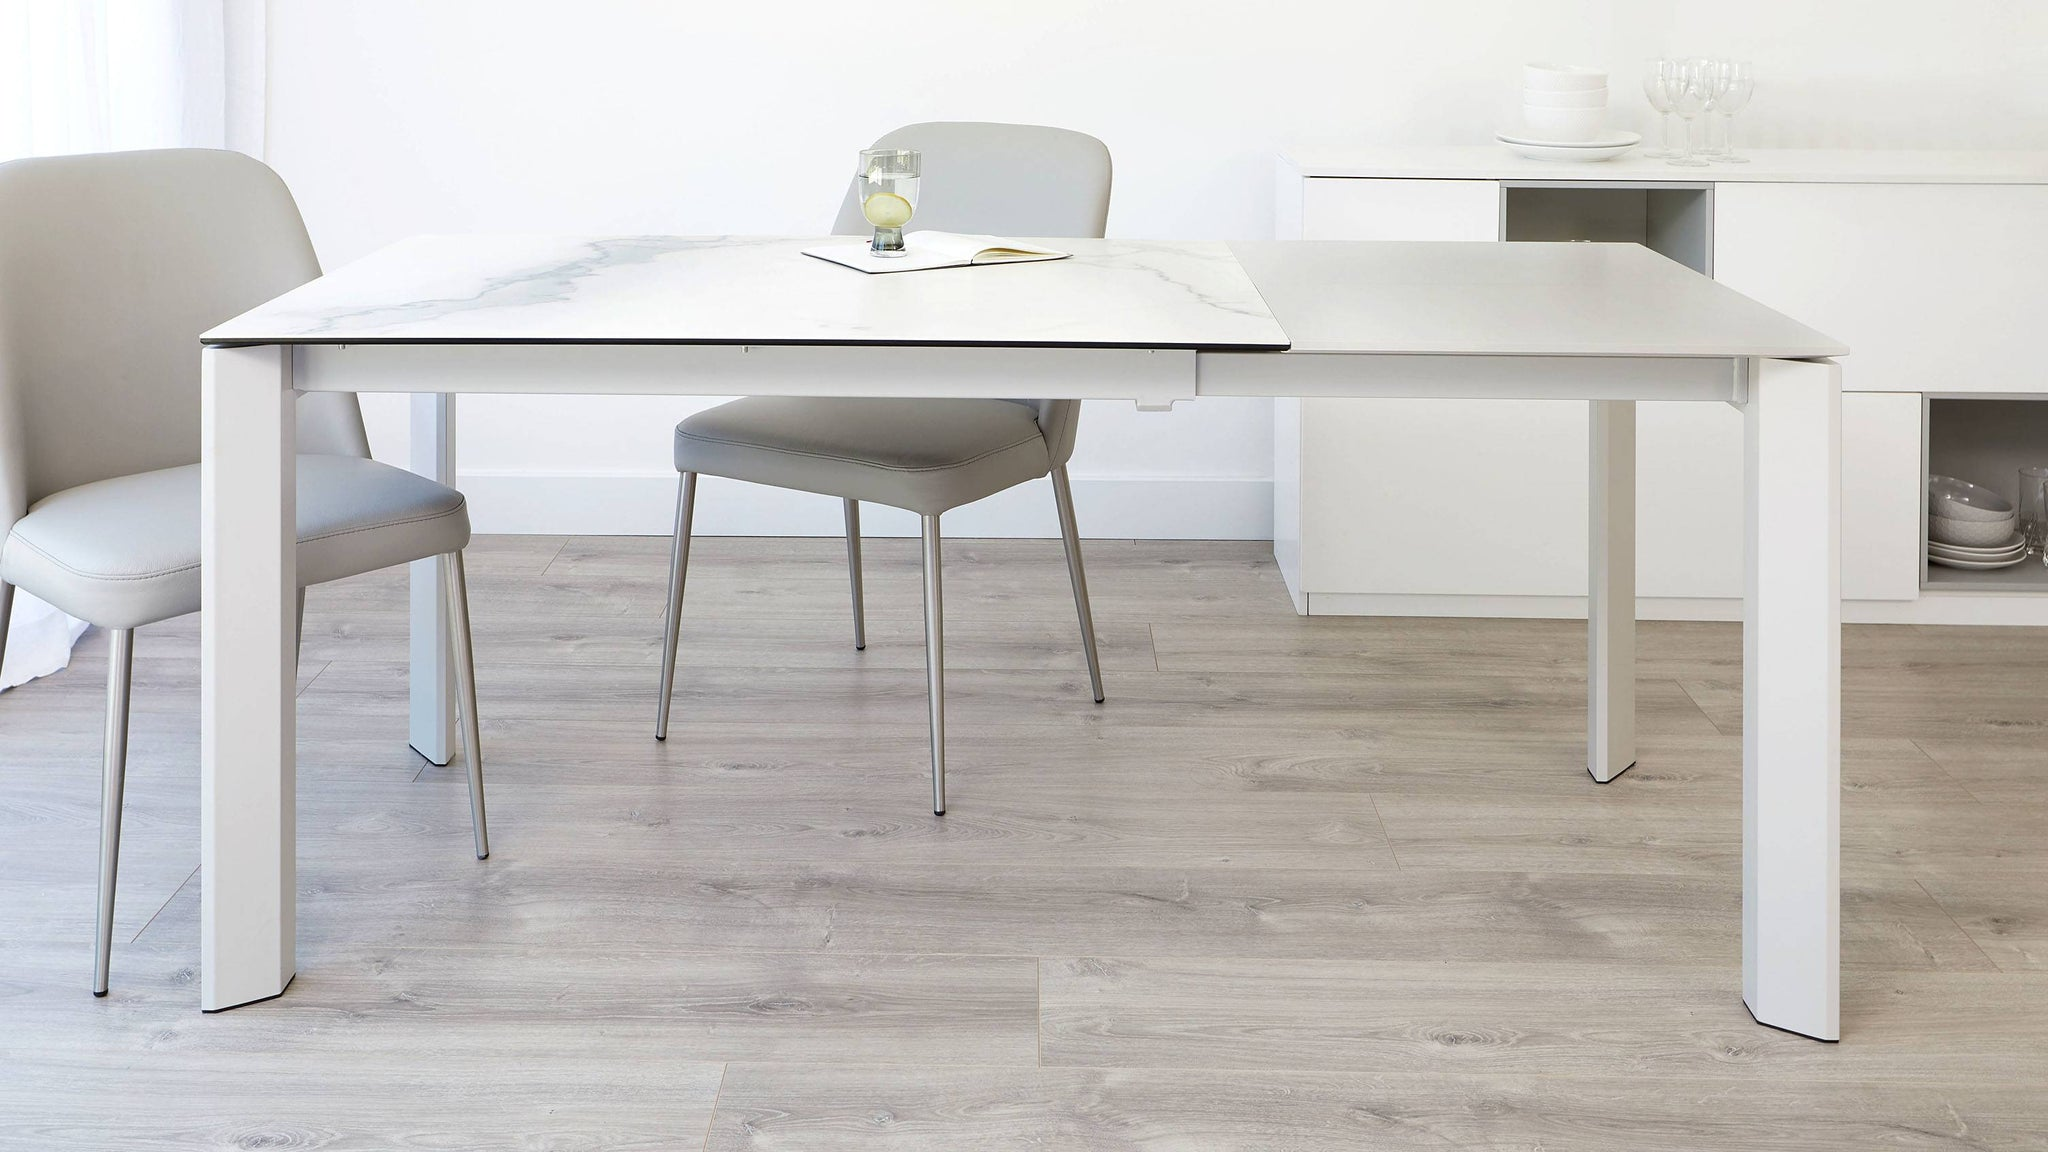 Modern grey and white marble ceramic dining table